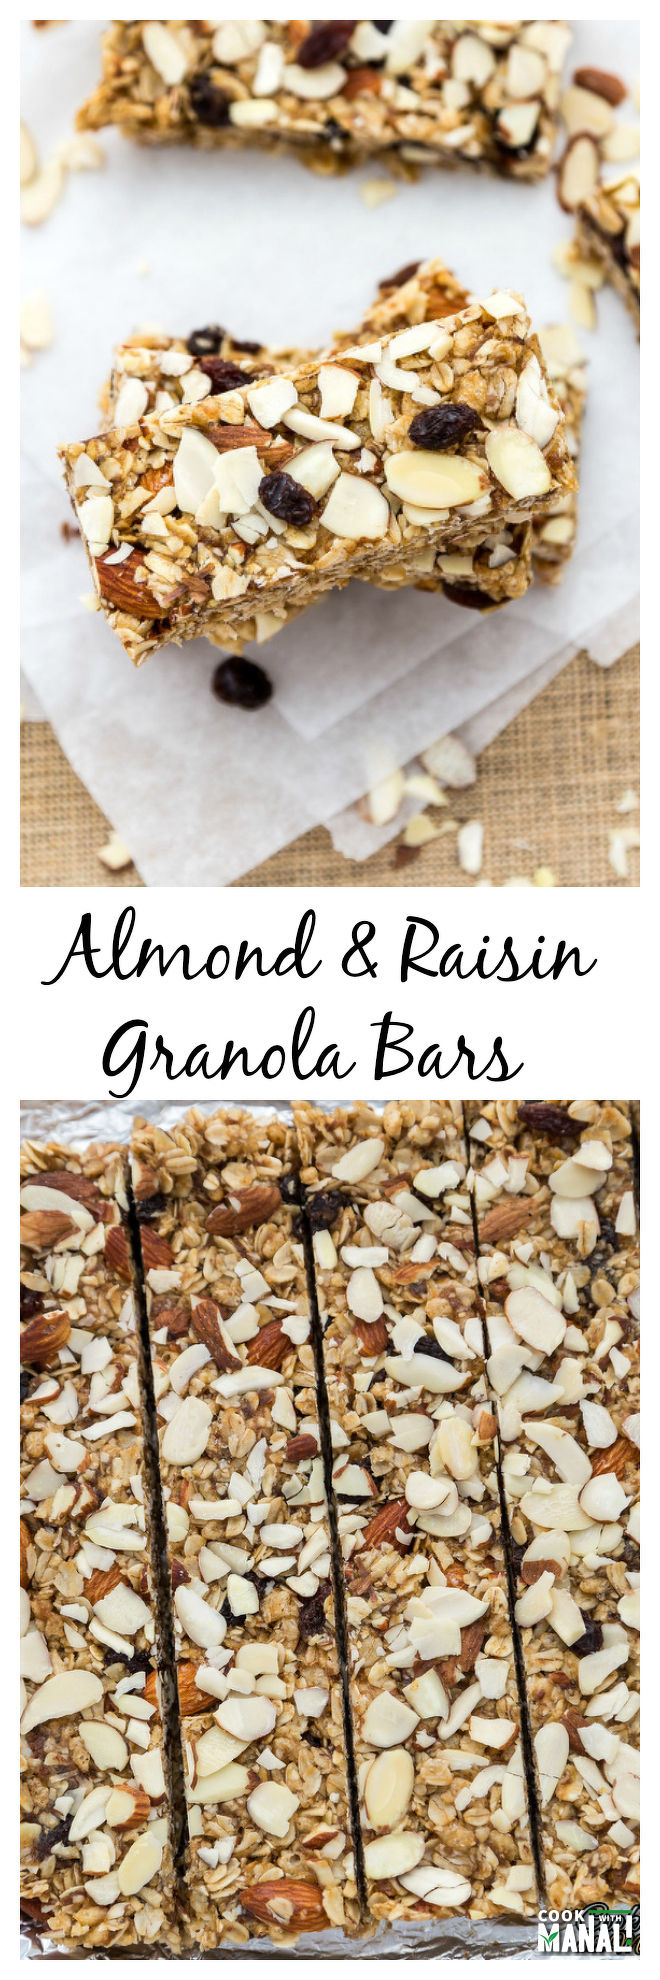 Almond-Raisin-Granola-Bars-Collage